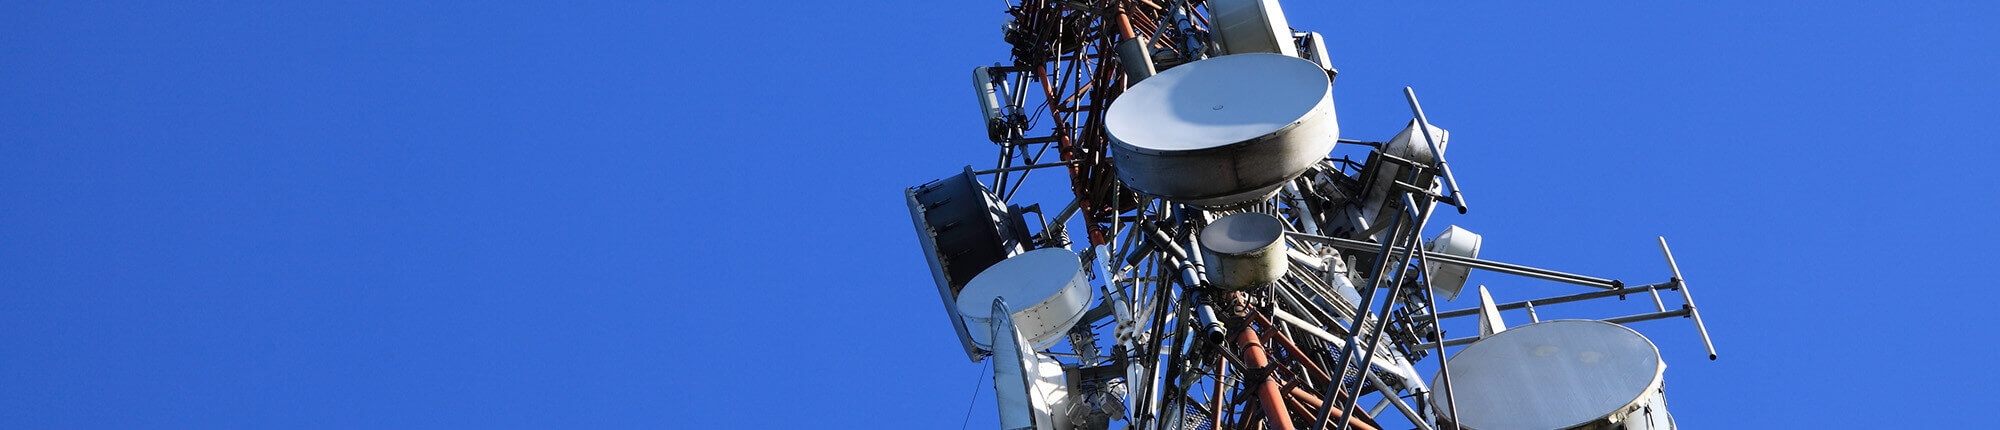 Cell phone towers on unstable ground need helical piering for stability.